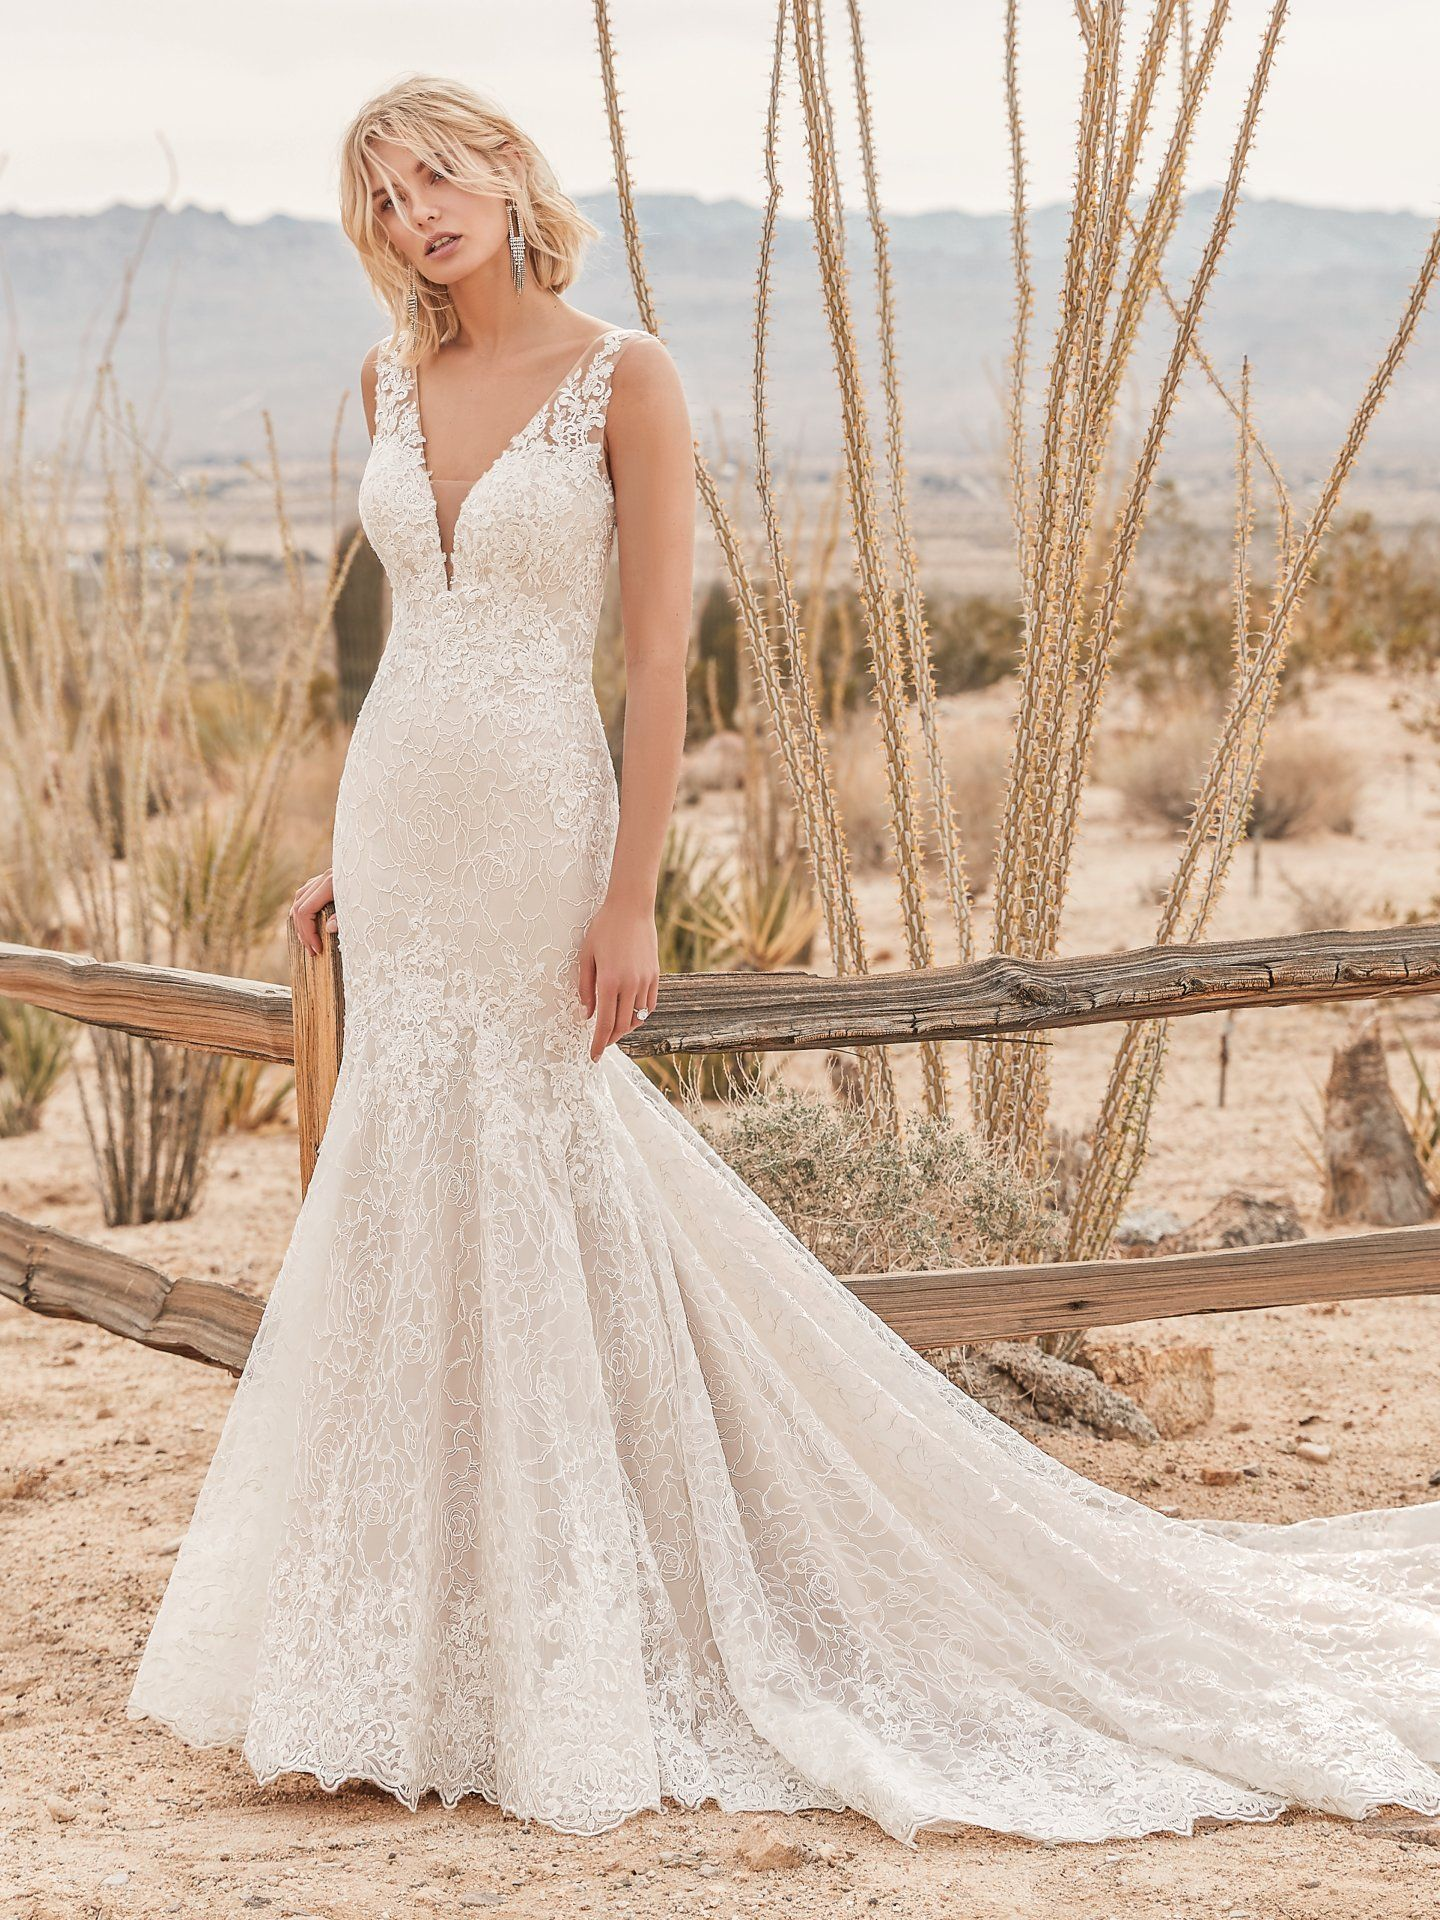 Wedding Dresses Bridal Gowns Sottero And Midgley Wedding Dresses Wedding Dresses Lace Fit And Flare Wedding Dress [ 1920 x 1440 Pixel ]